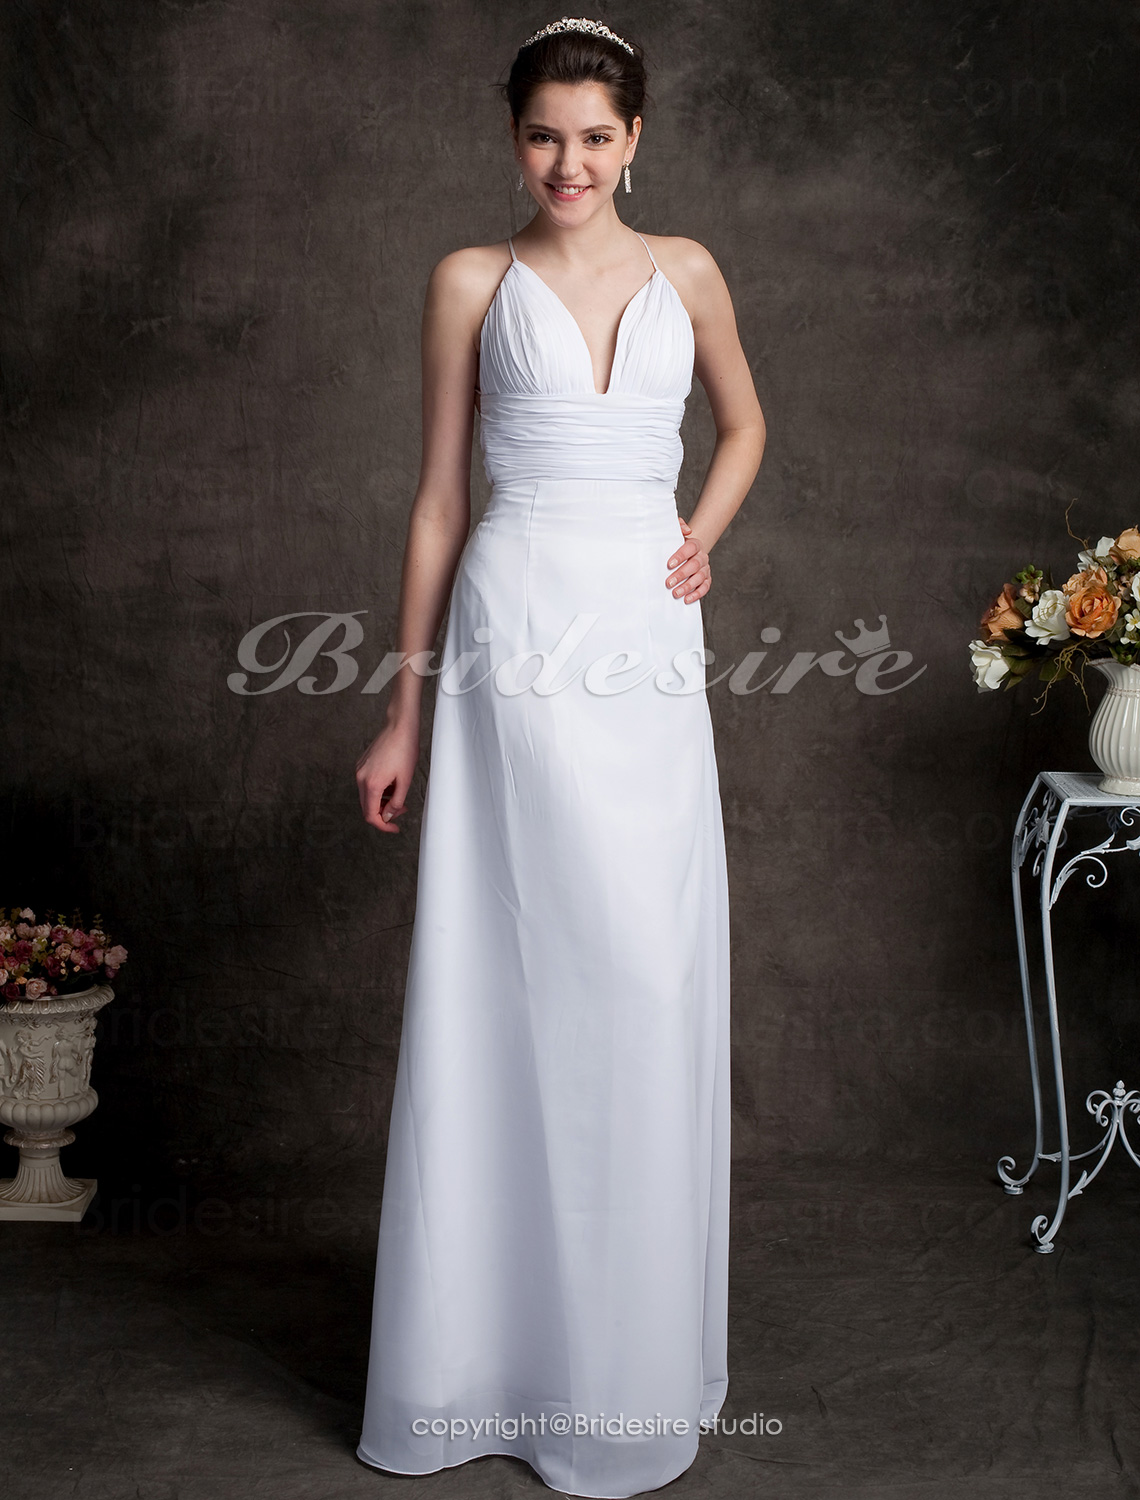 Sheath/ Column Chiffon Spaghetti Straps Sweep/ Brush Train V-neck Wedding Dress